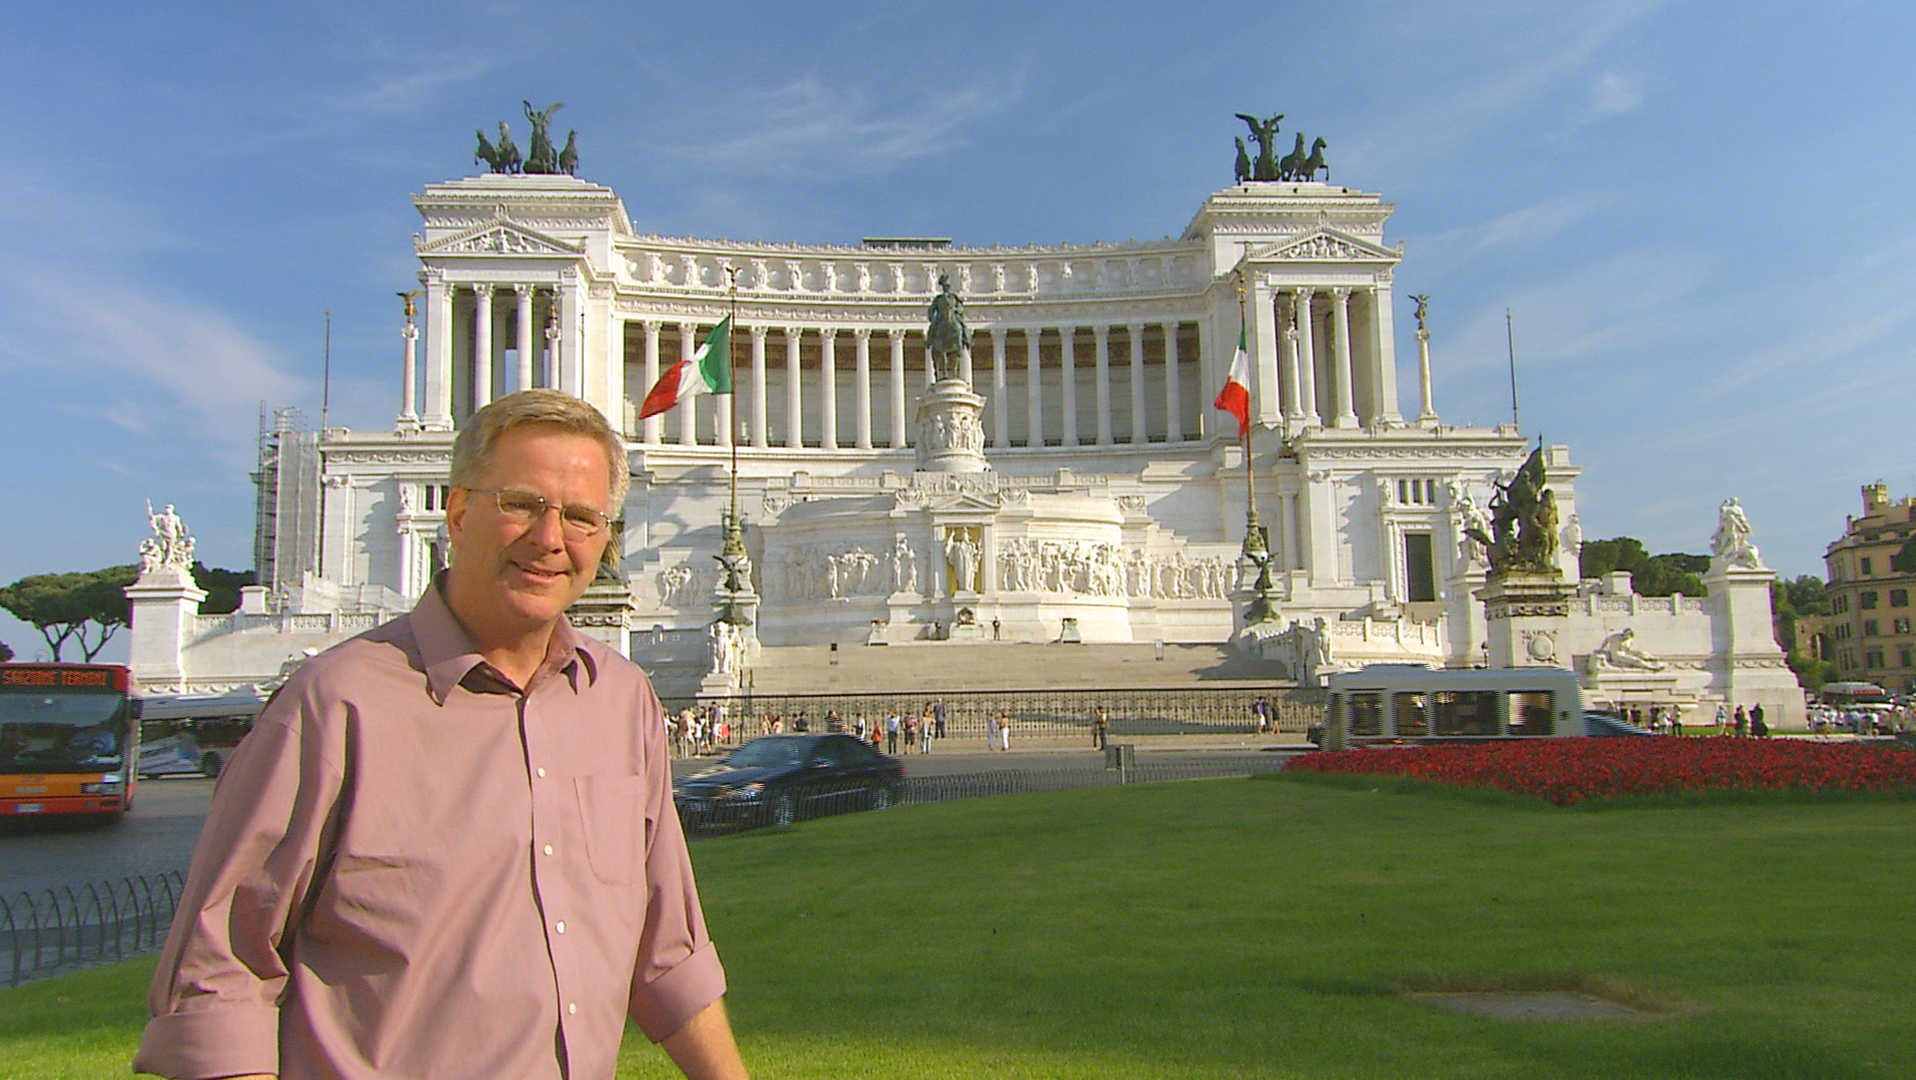 Rick at the Victor Emmanuel monument